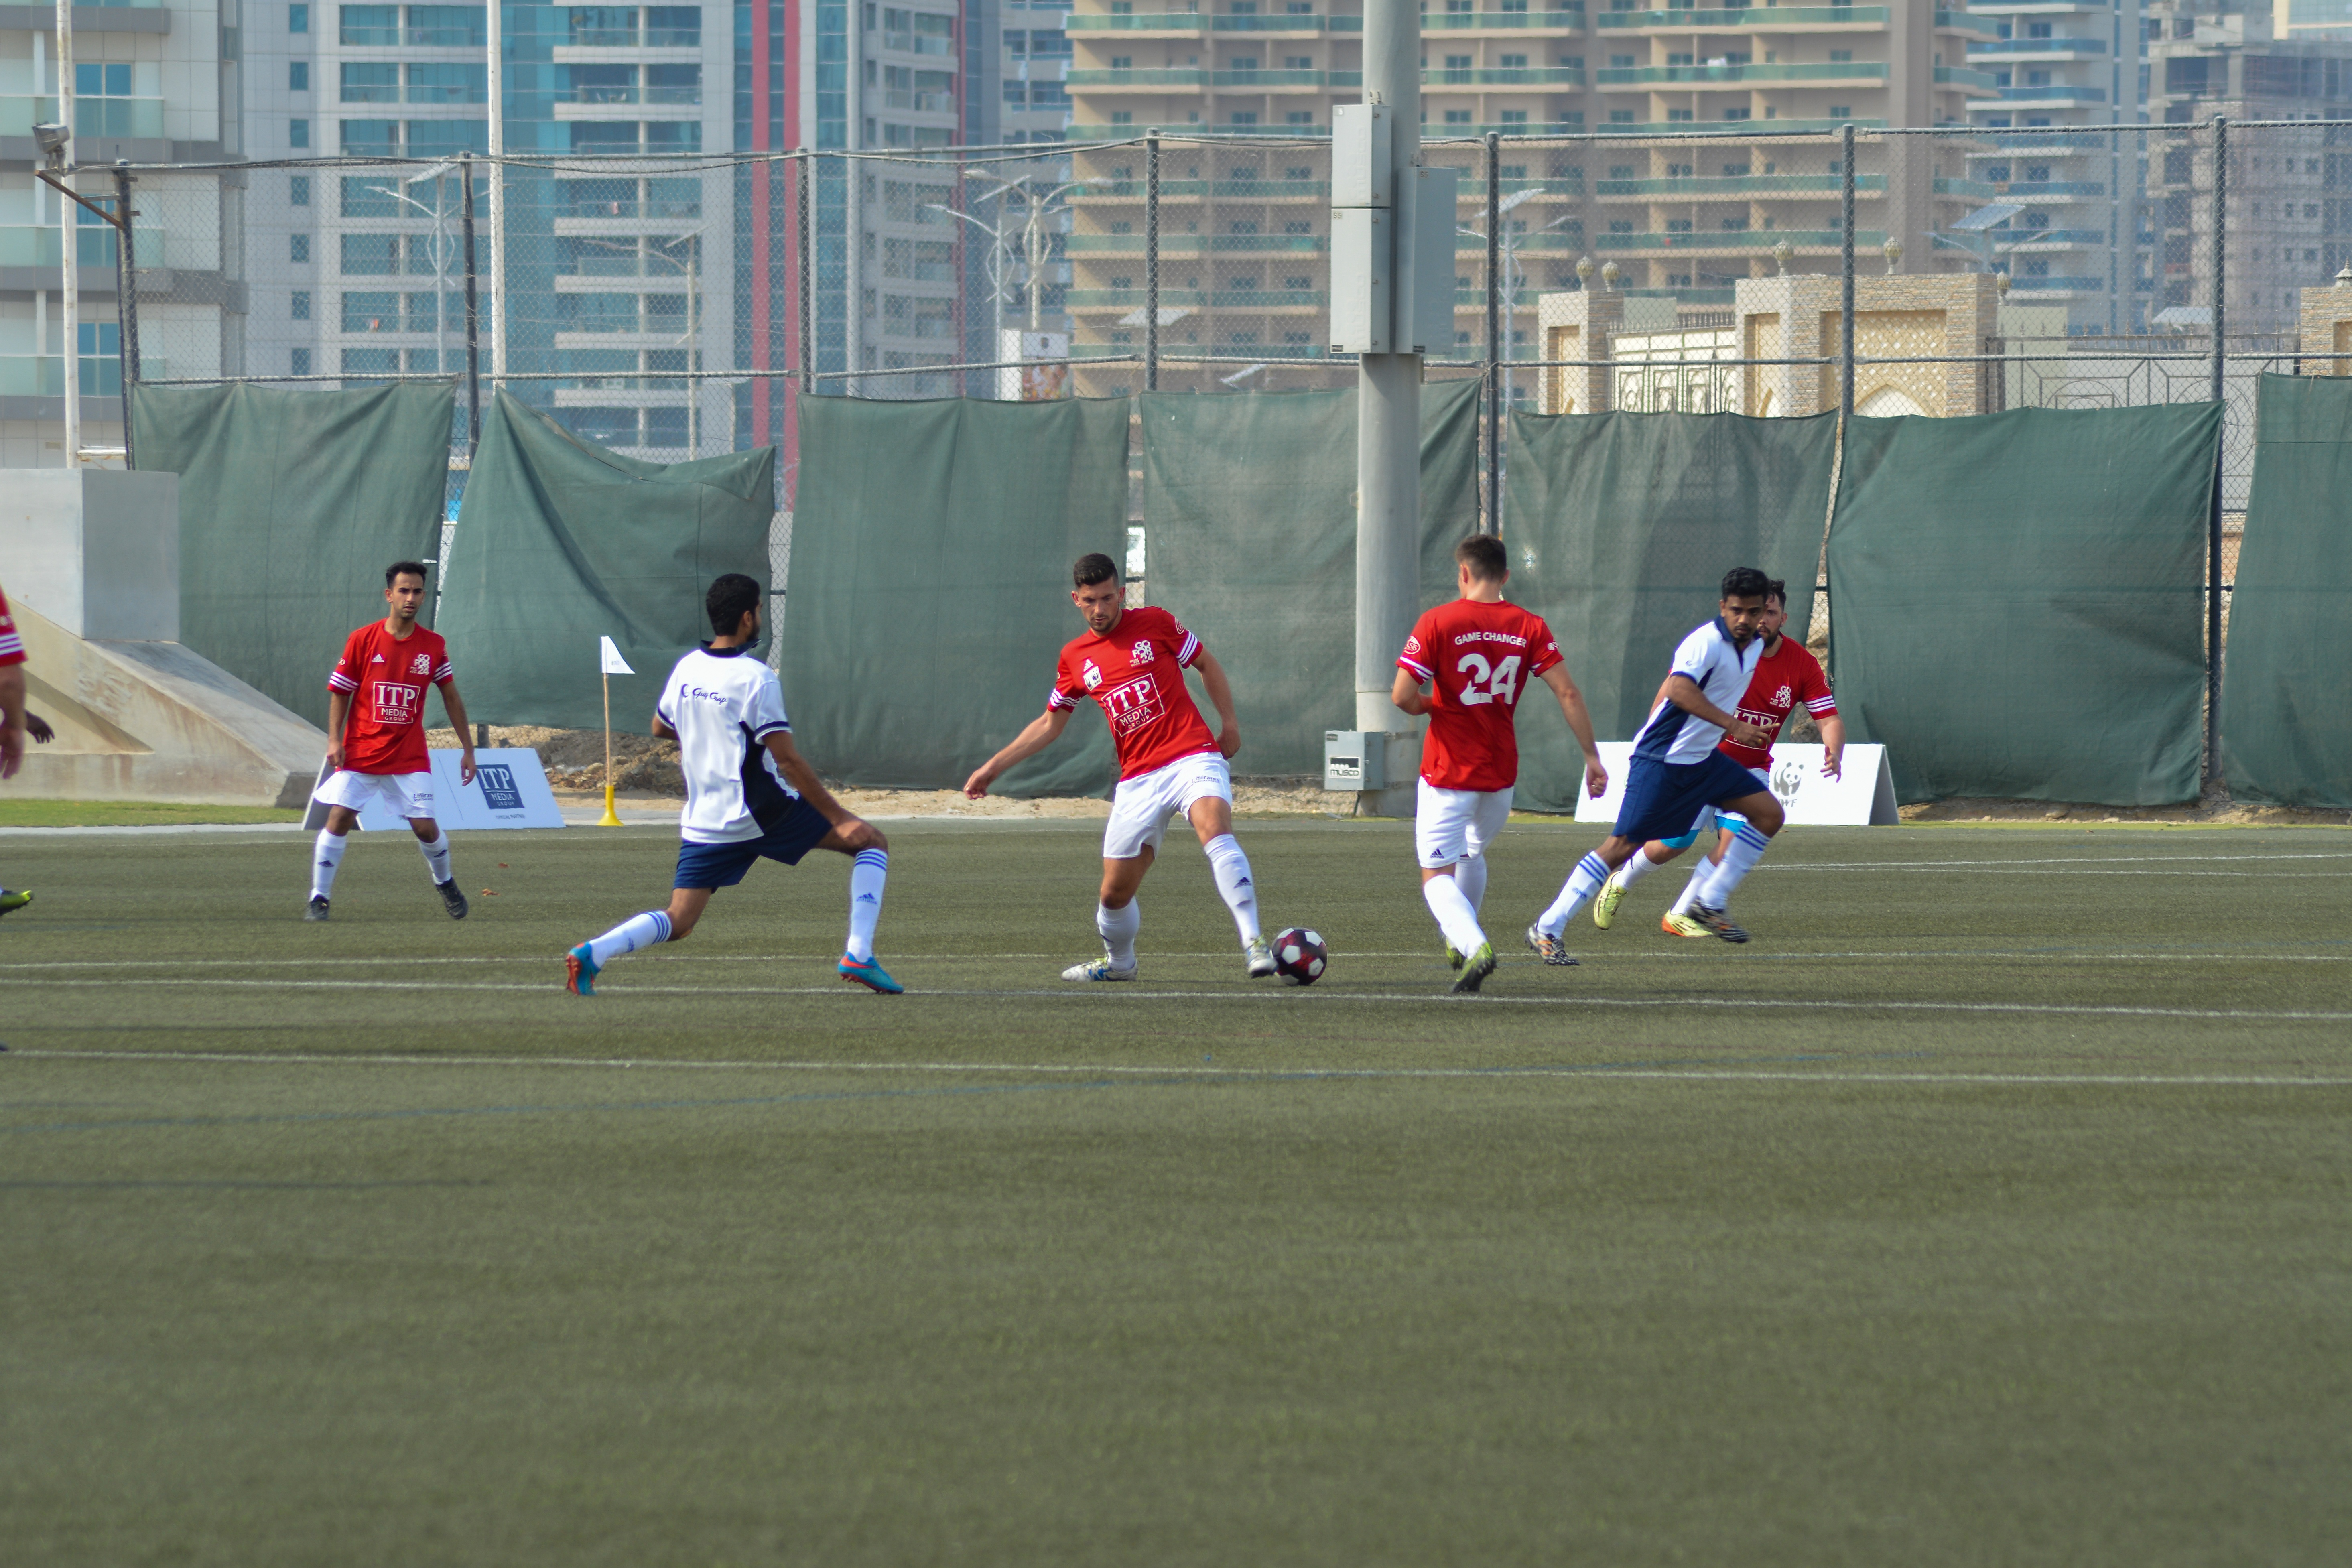 Gulf Craft team vs Heroes at the Oceans 24 Hour Football Challenge